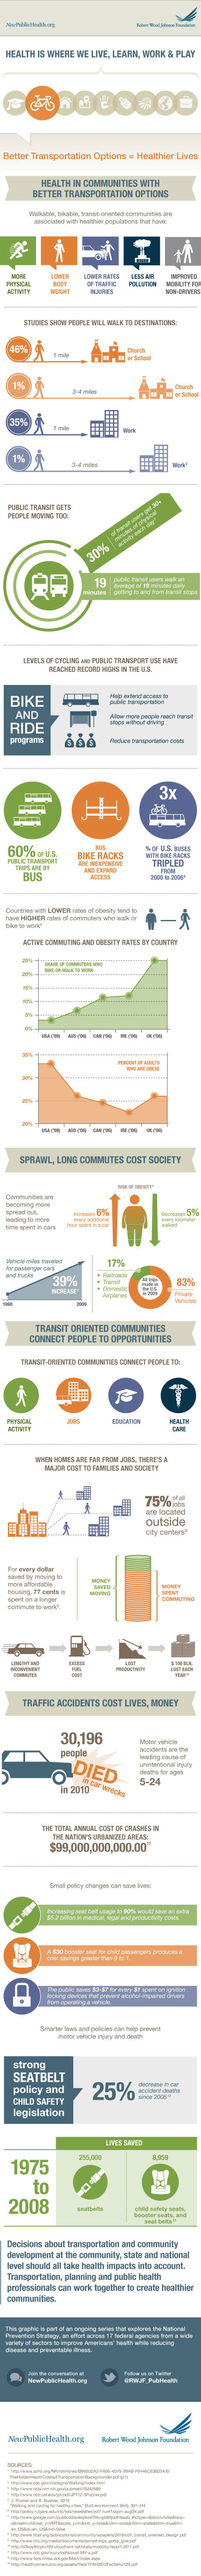 TransportationHealthInfographic.jpg